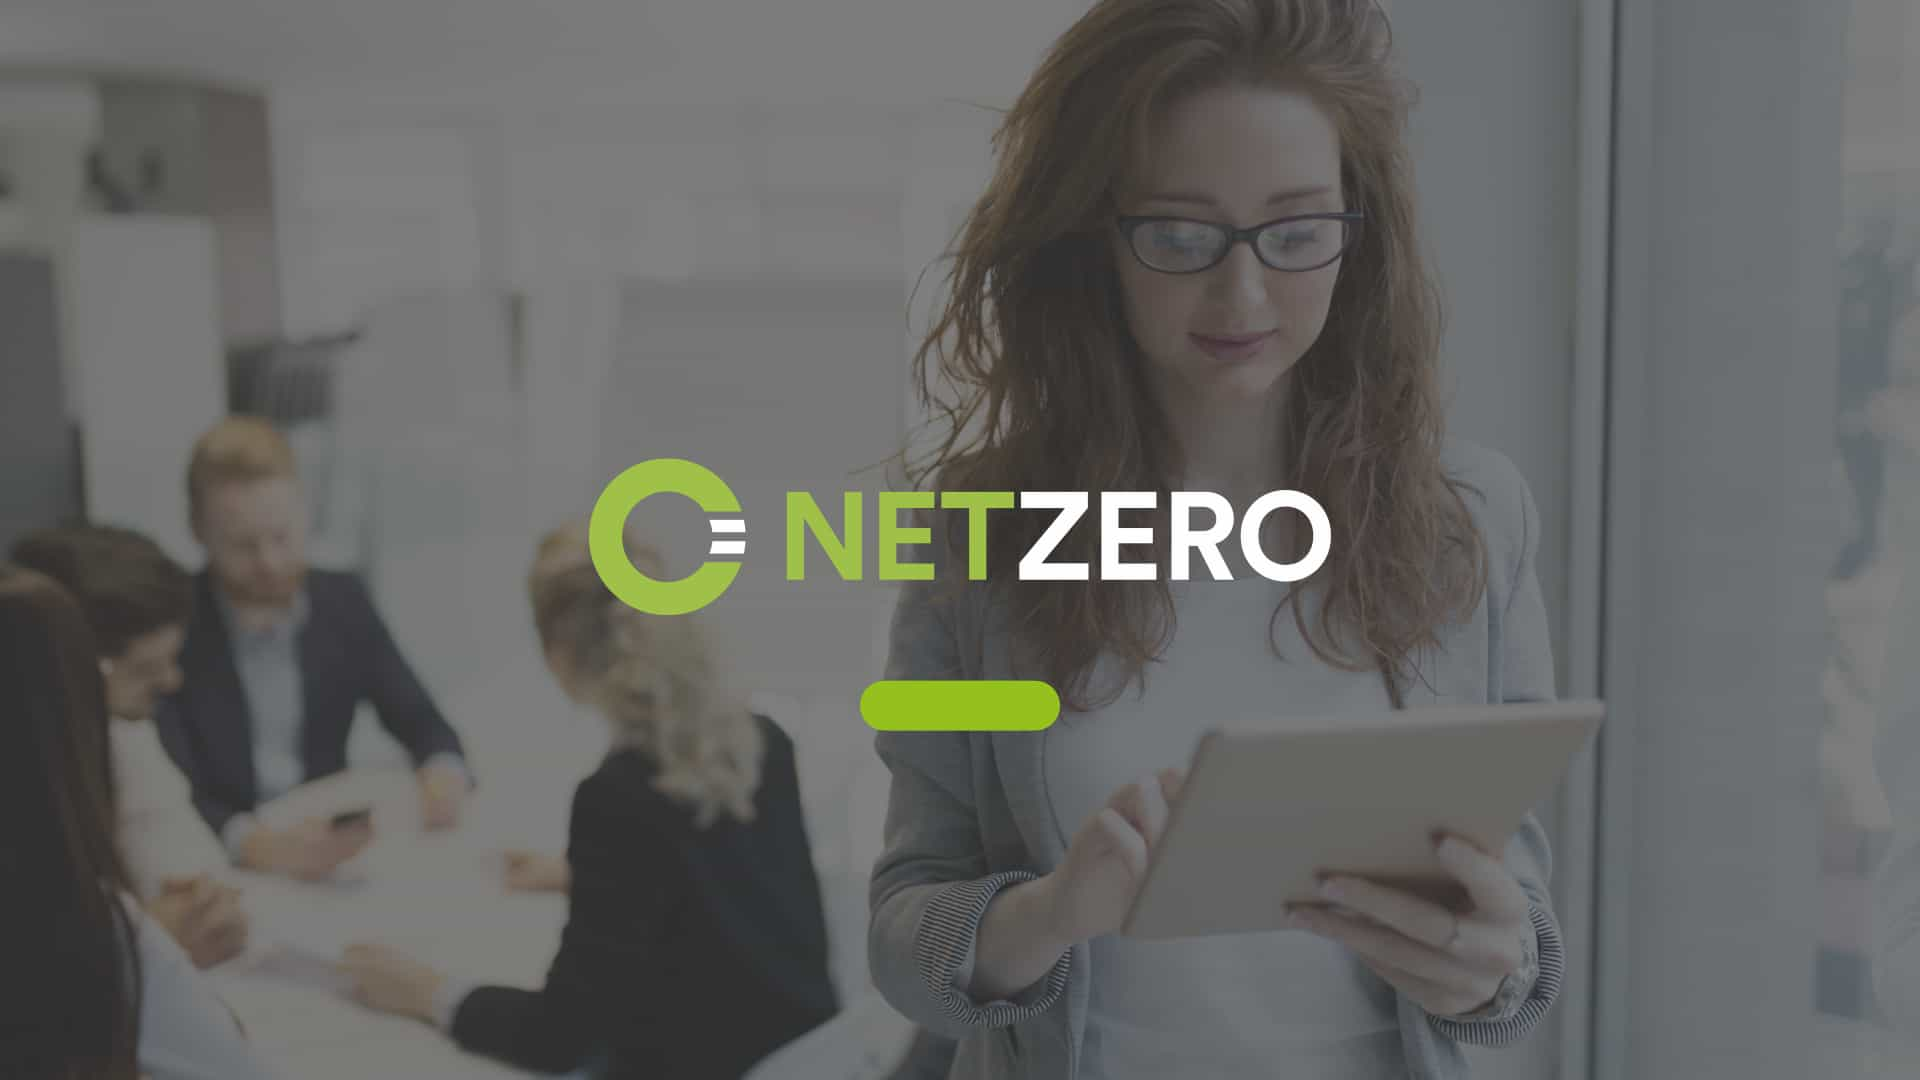 Branding and website design for NetZero